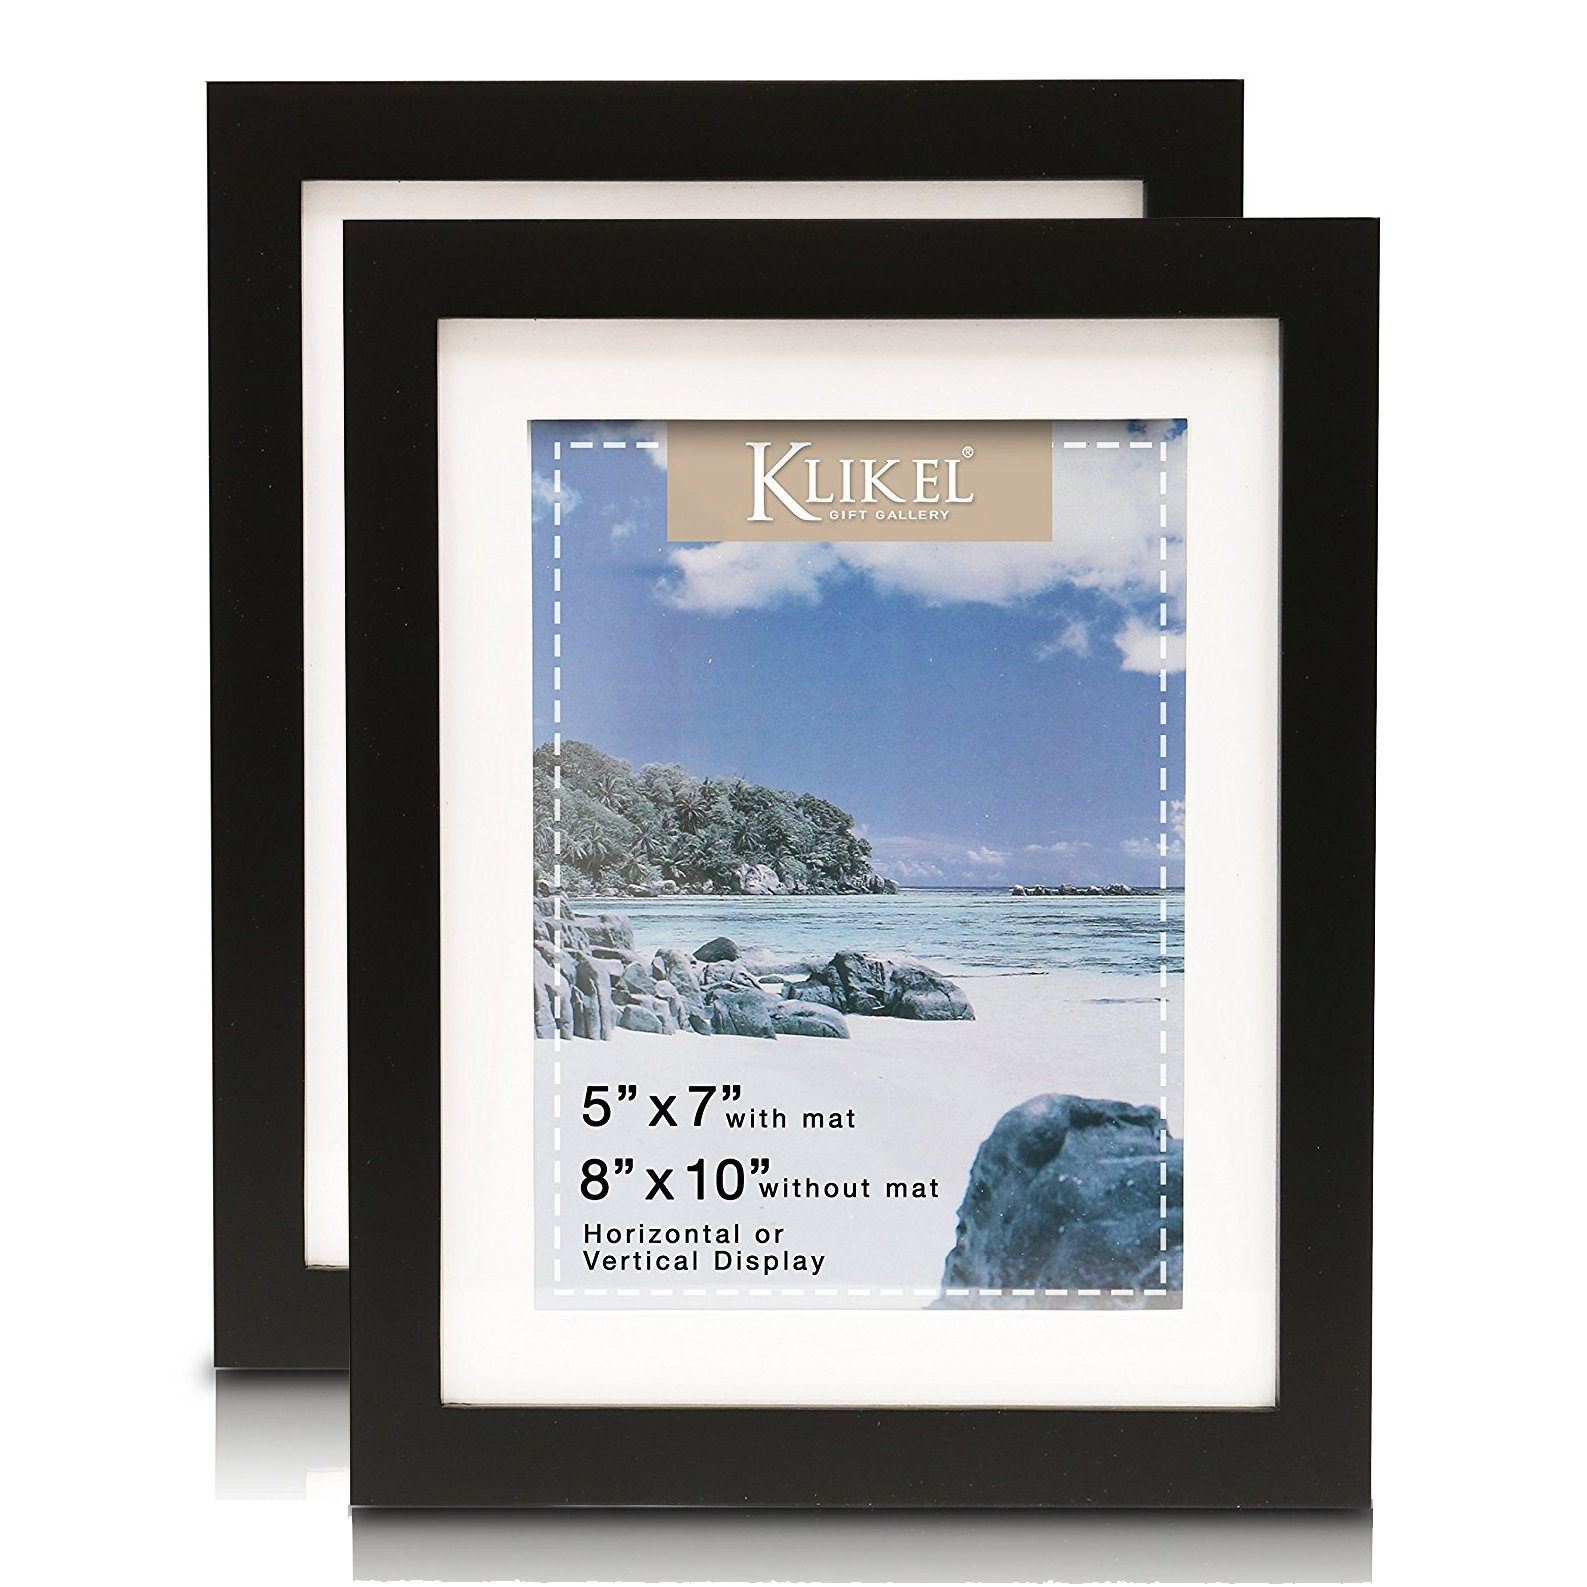 Klikel 5 X 7 Matted Black Picture Frame (8 X 10 Without Mat) - Solid Wood Wall Hanging And Table Standing Picture Frame, Set of 2